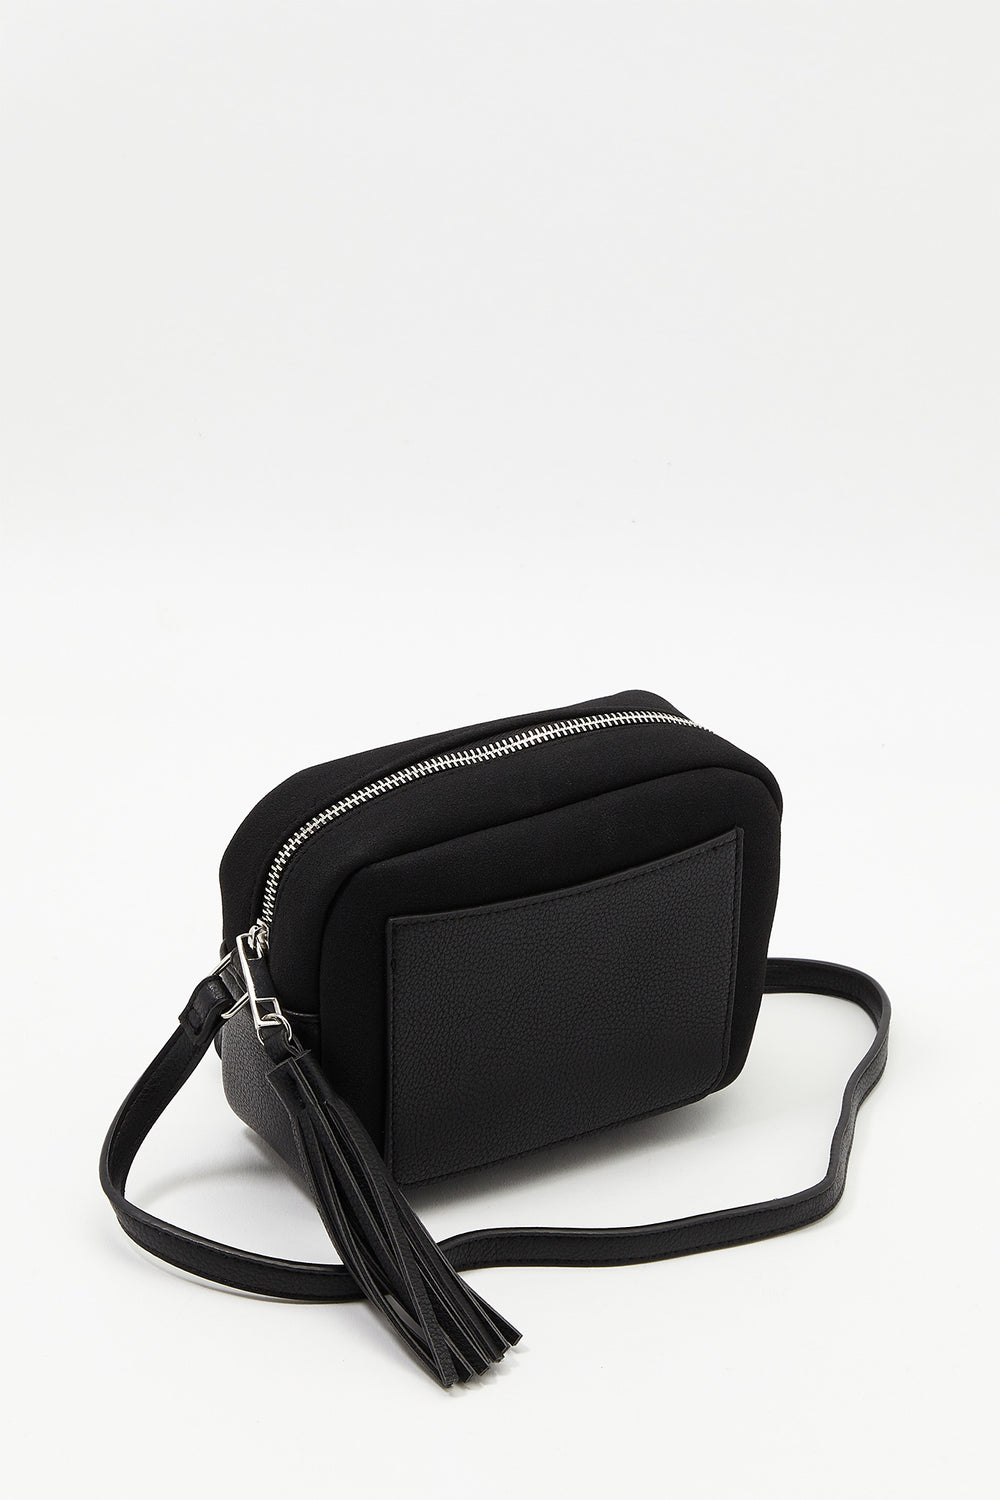 Tassel Crossbody Bag Black